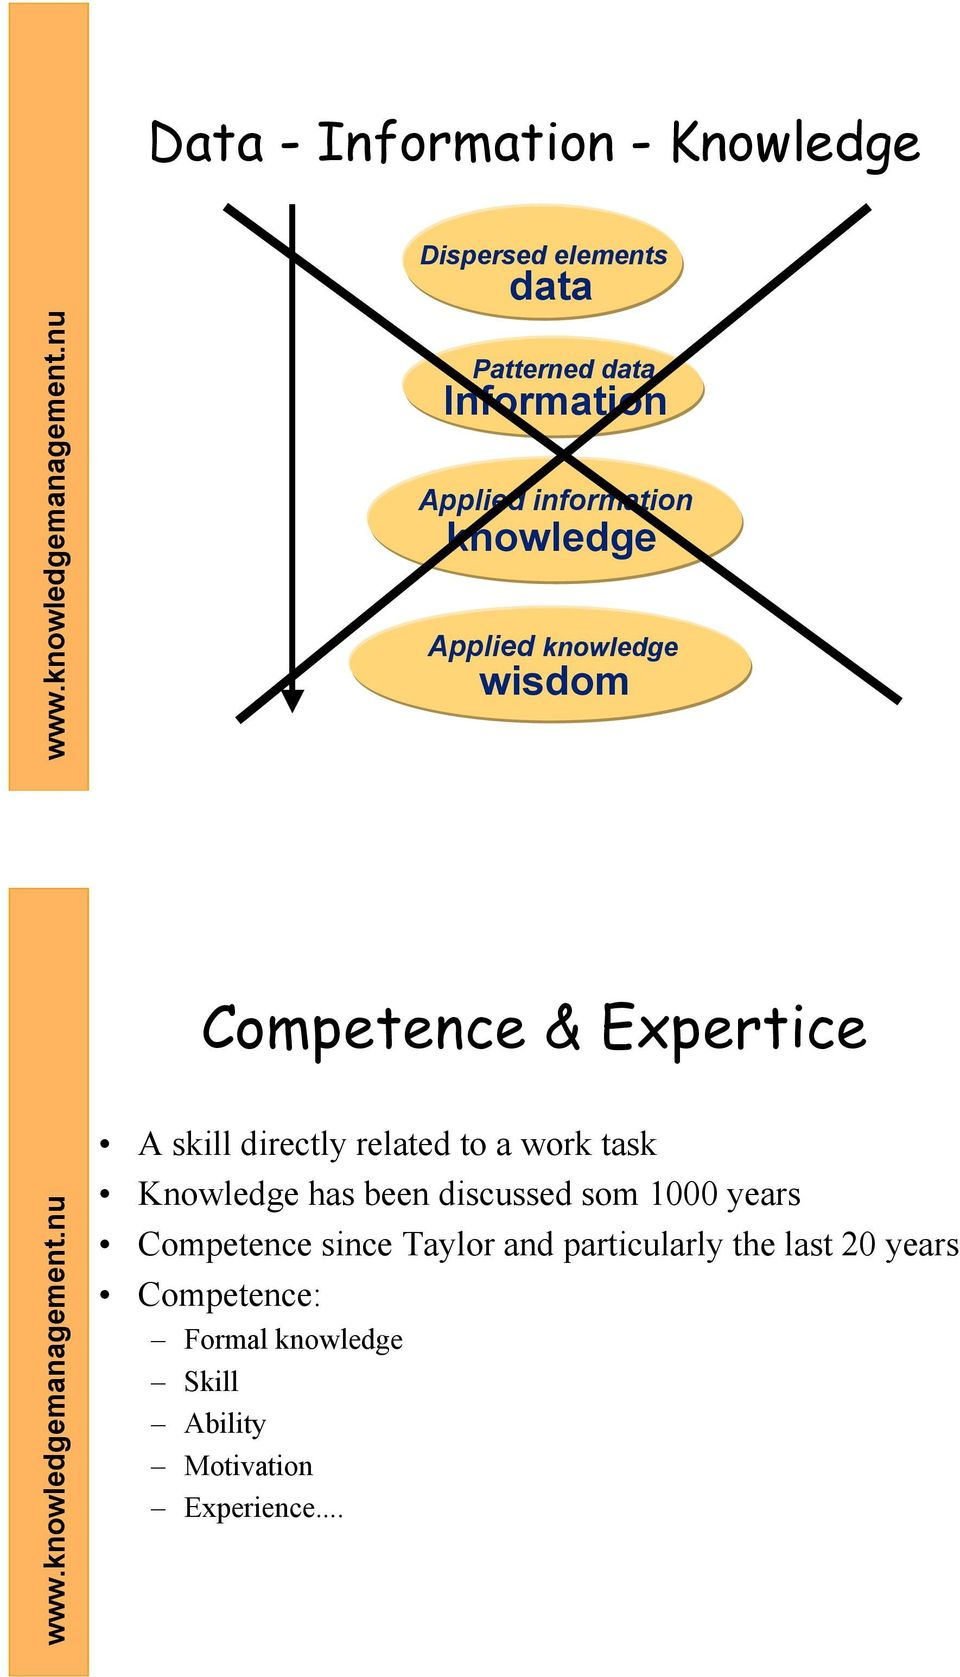 related to a work task Knowledge has been discussed som 1000 years Competence since Taylor